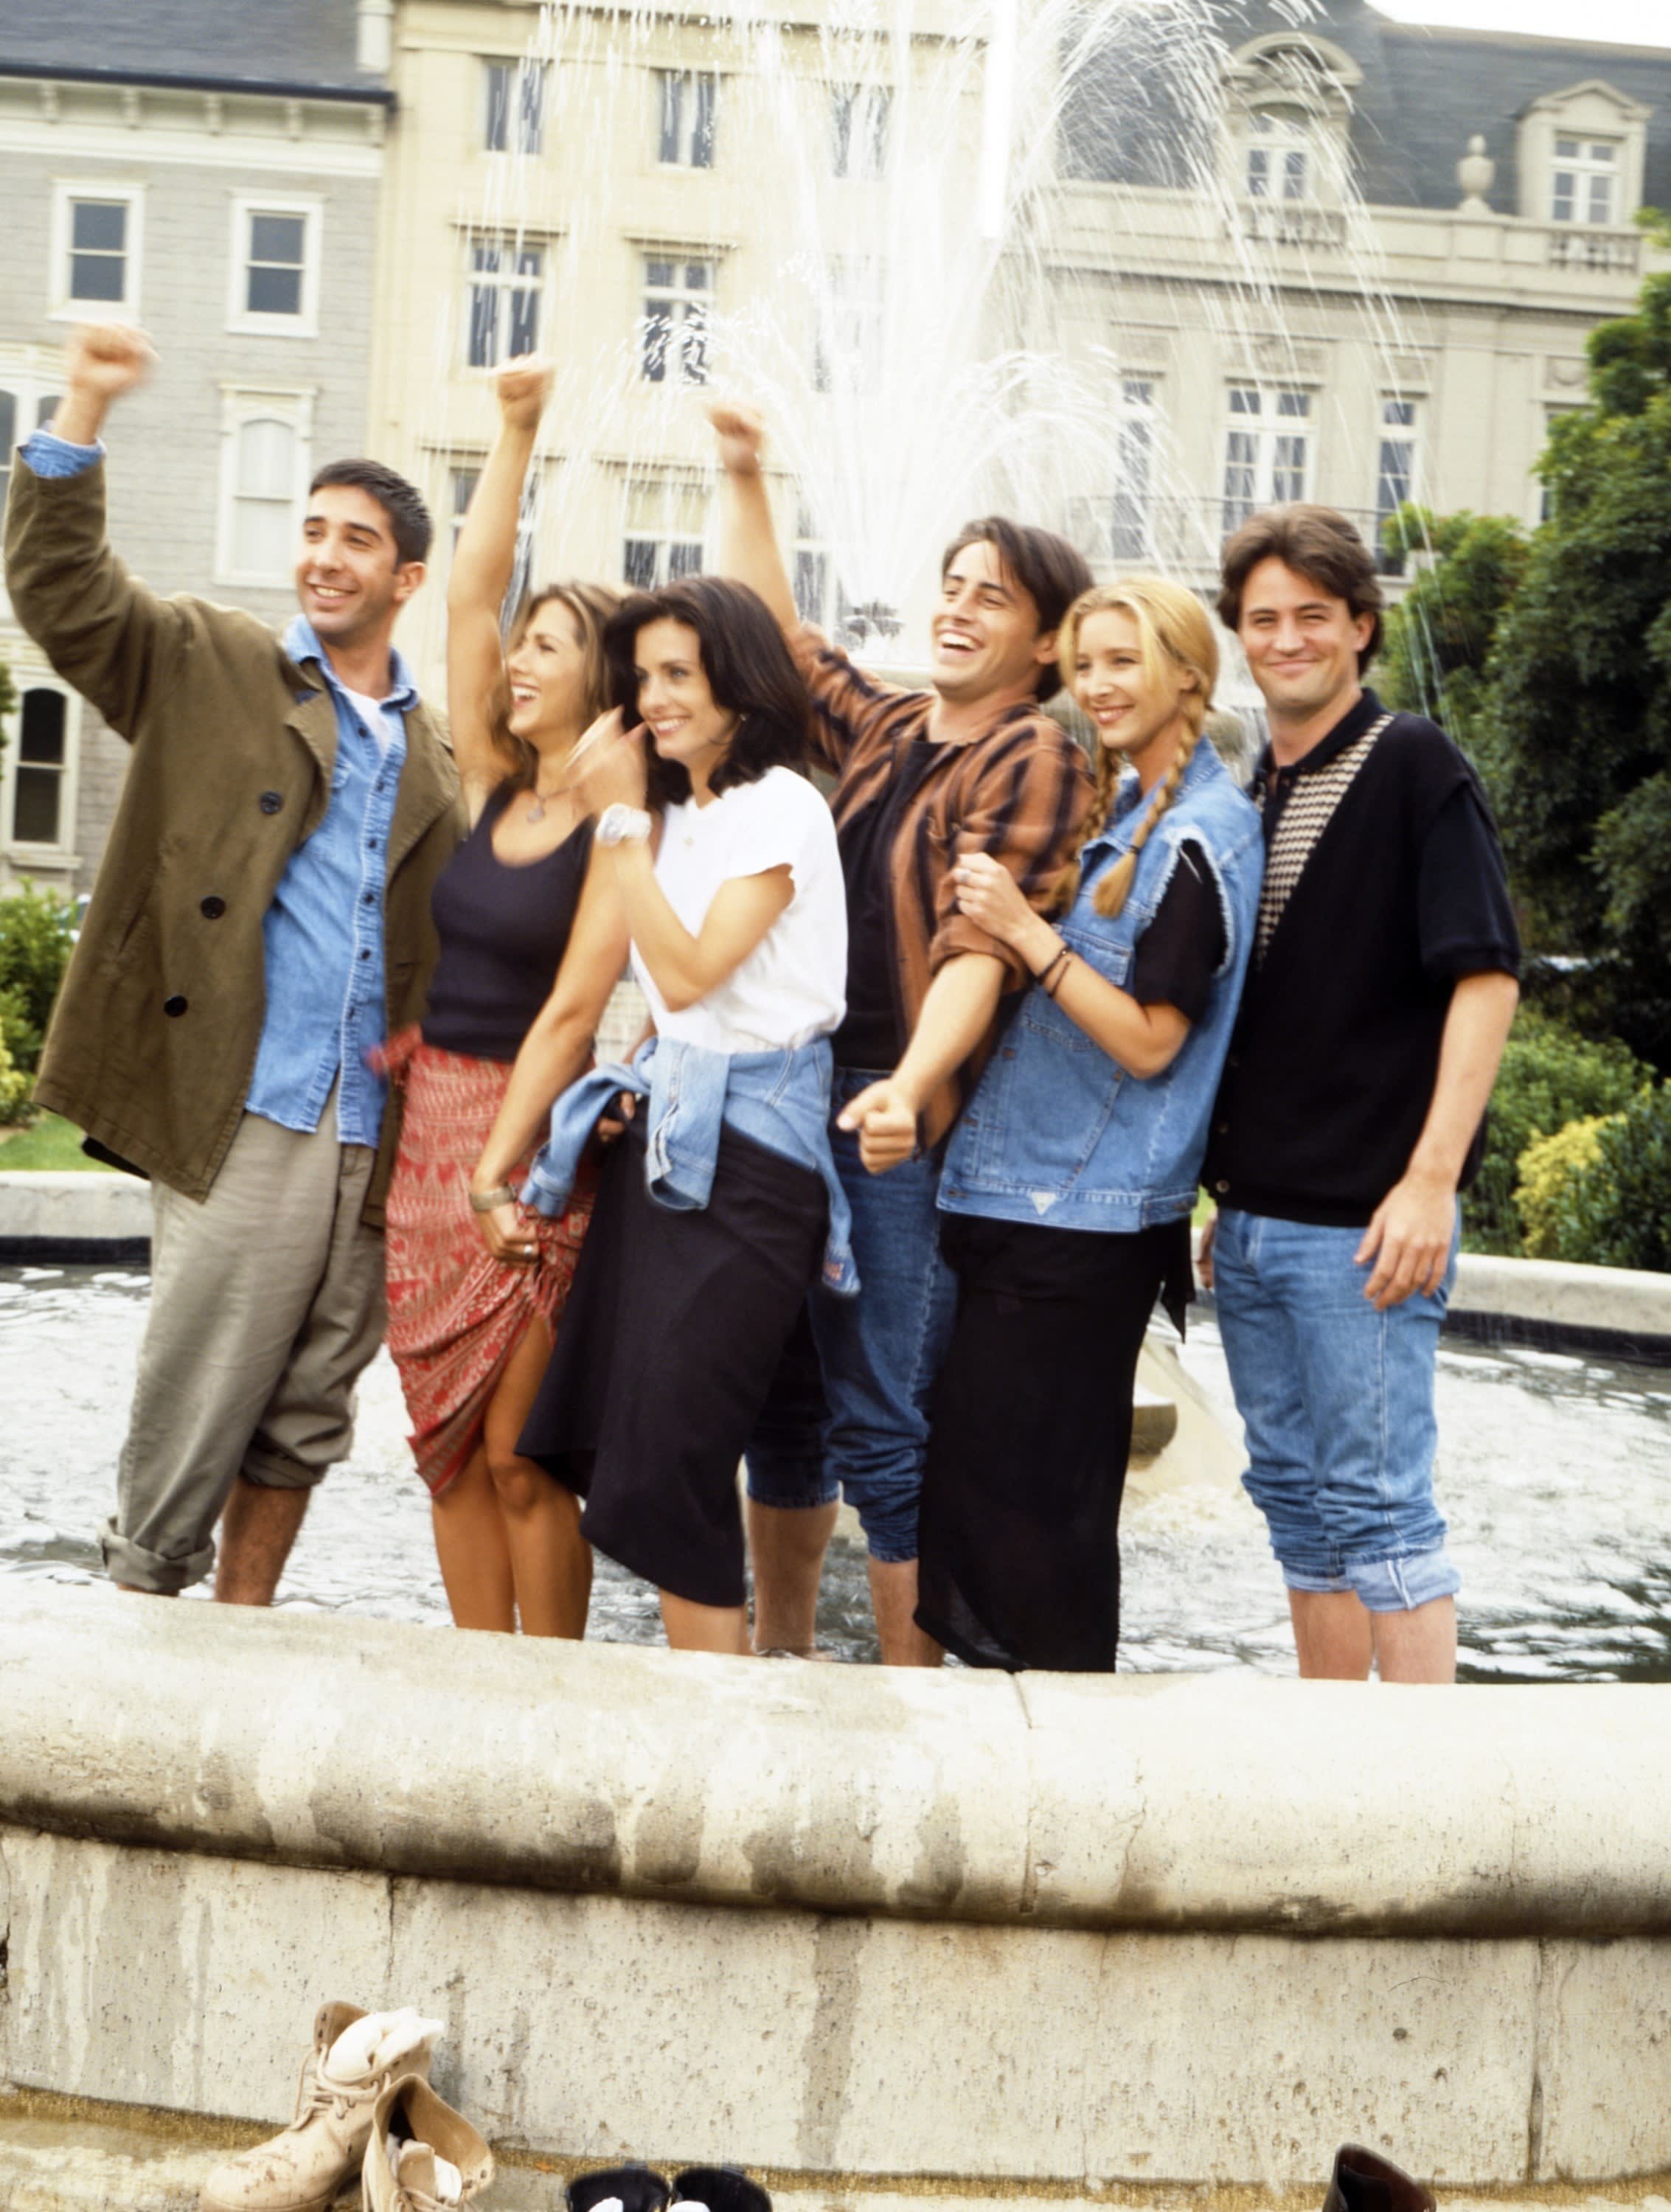 The cast of Friends standing in the fountain